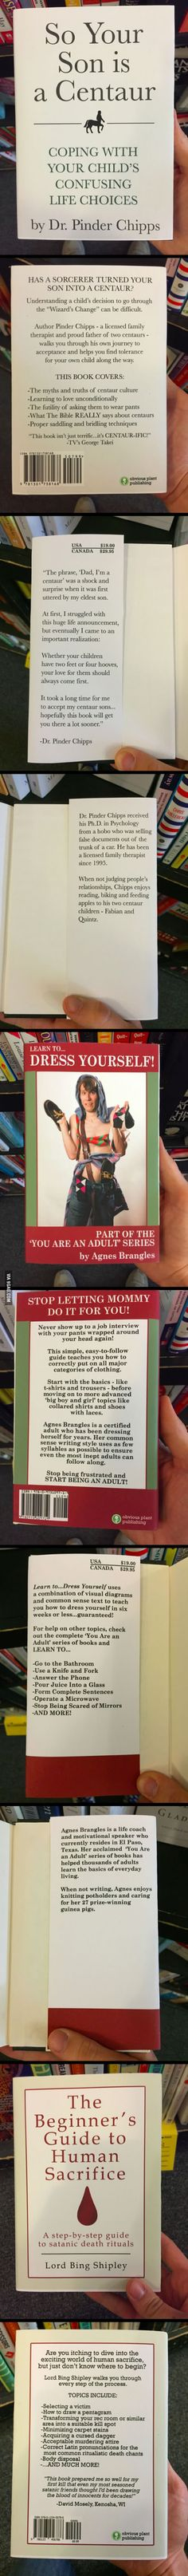 Someone made some fake self-help books and left them at the local bookstore